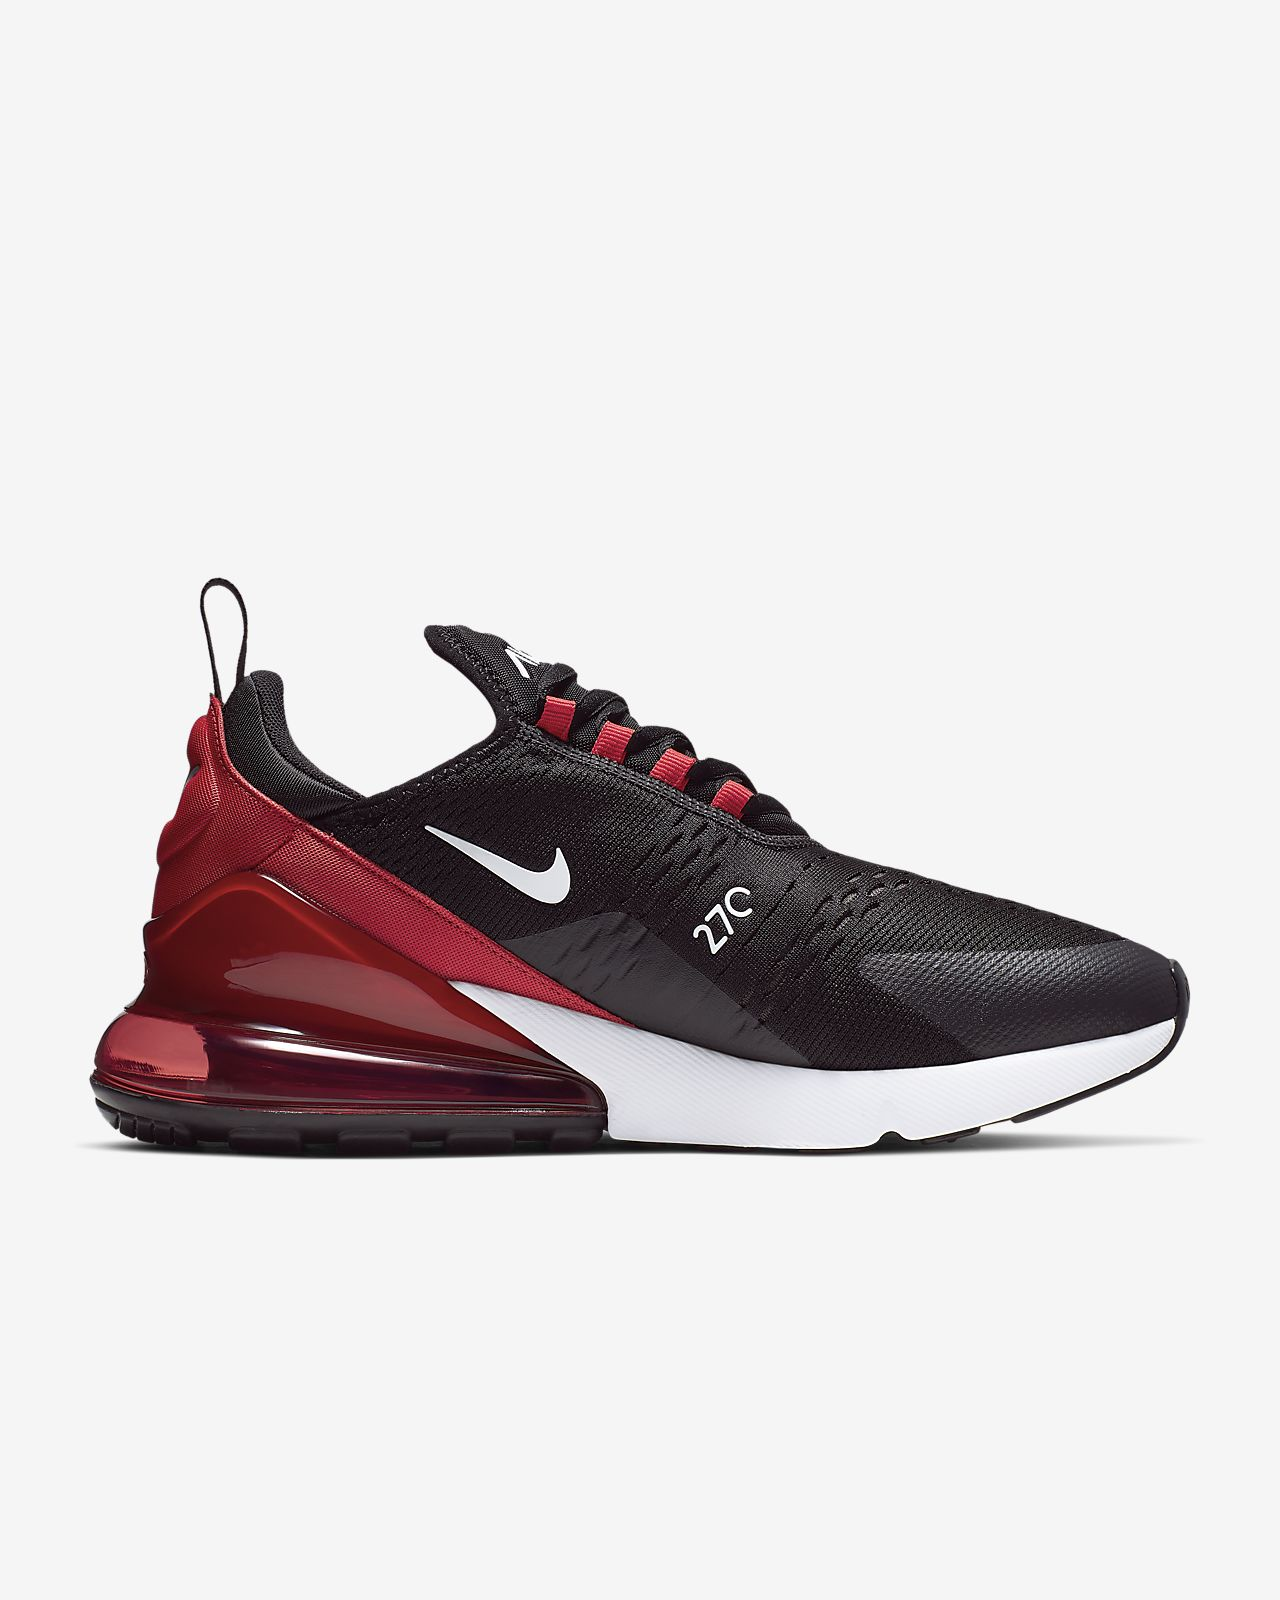 lowest price 4466d e8245 ... Nike Air Max 270 Men s Shoe